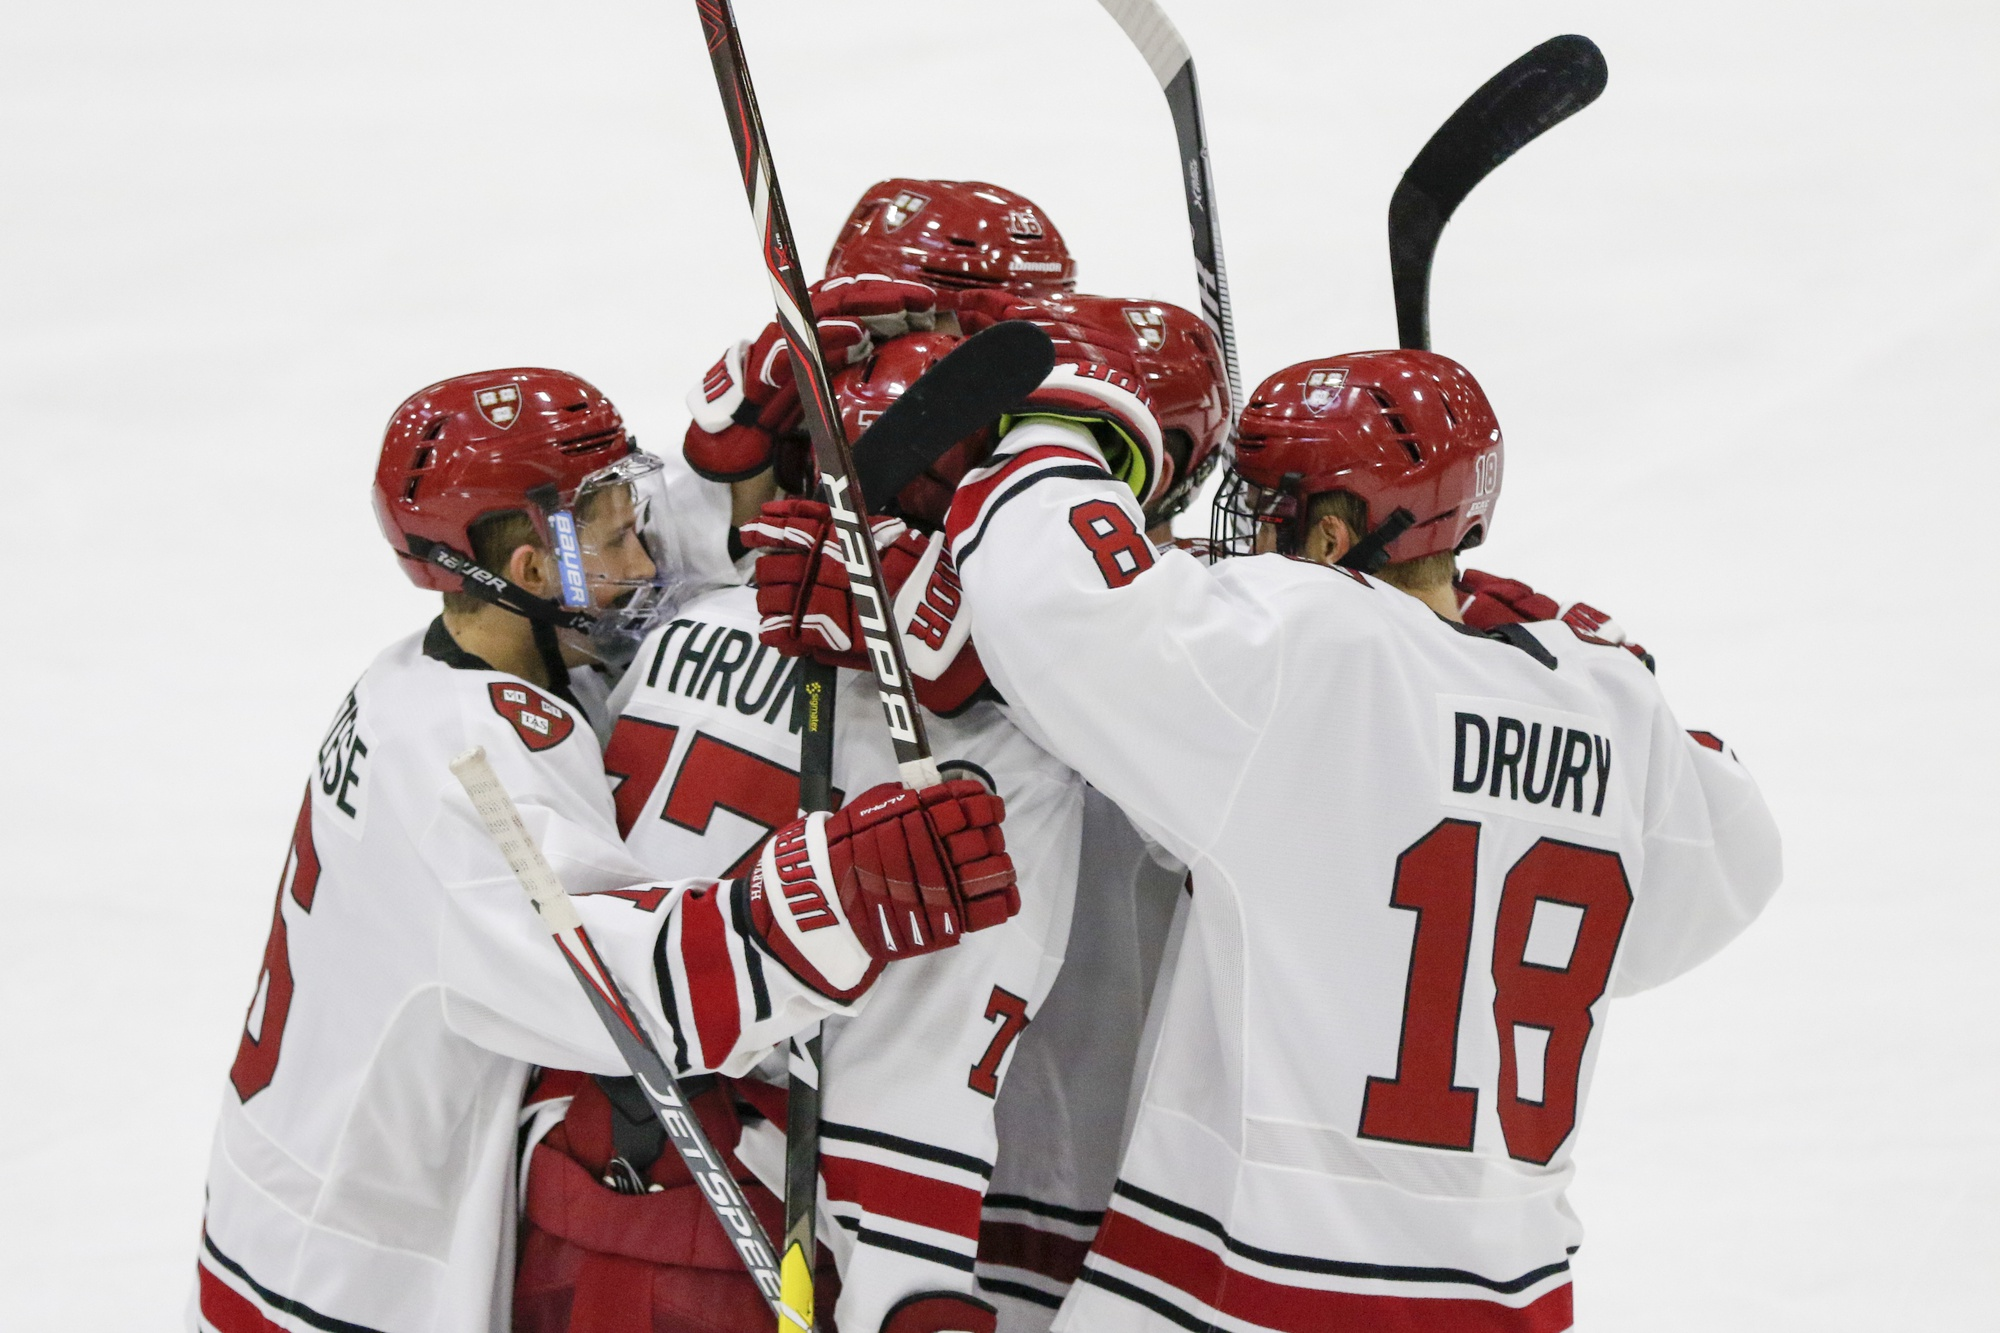 After putting up seven goals in its opening game against Dartmouth, the Crimson will look to bring a balanced, defensive outlook to its next weekend of play.